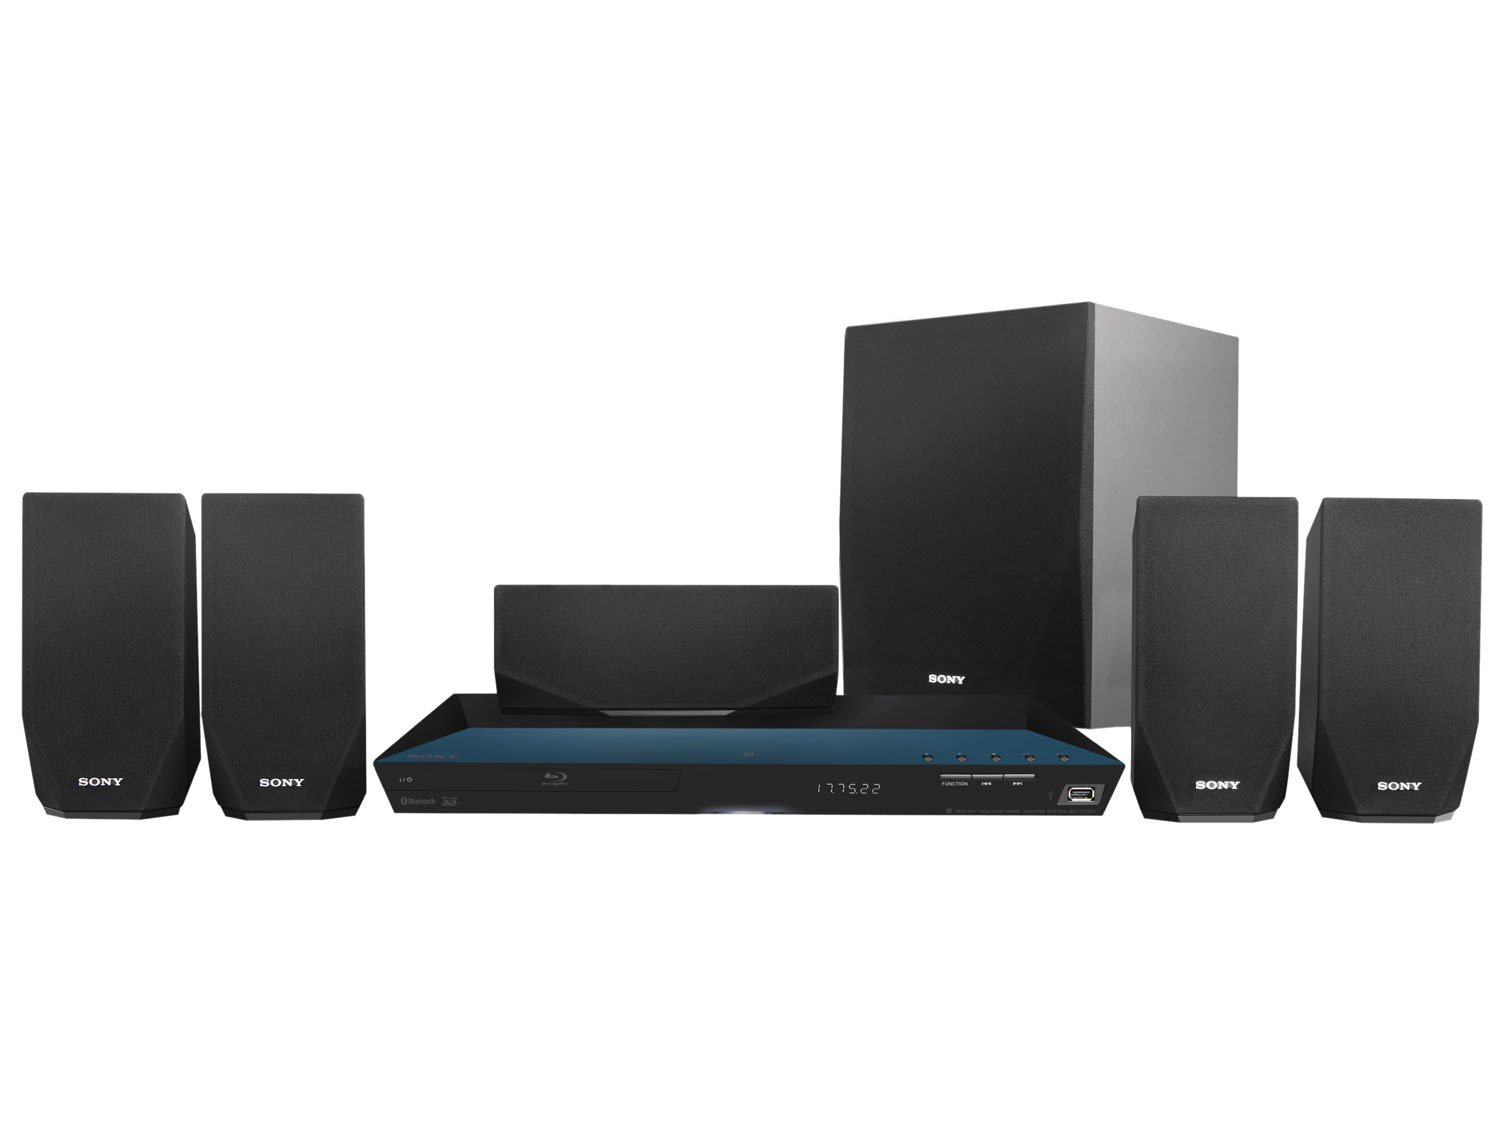 sony 3d surround sound home theater system 9 1 rack rv m. Black Bedroom Furniture Sets. Home Design Ideas